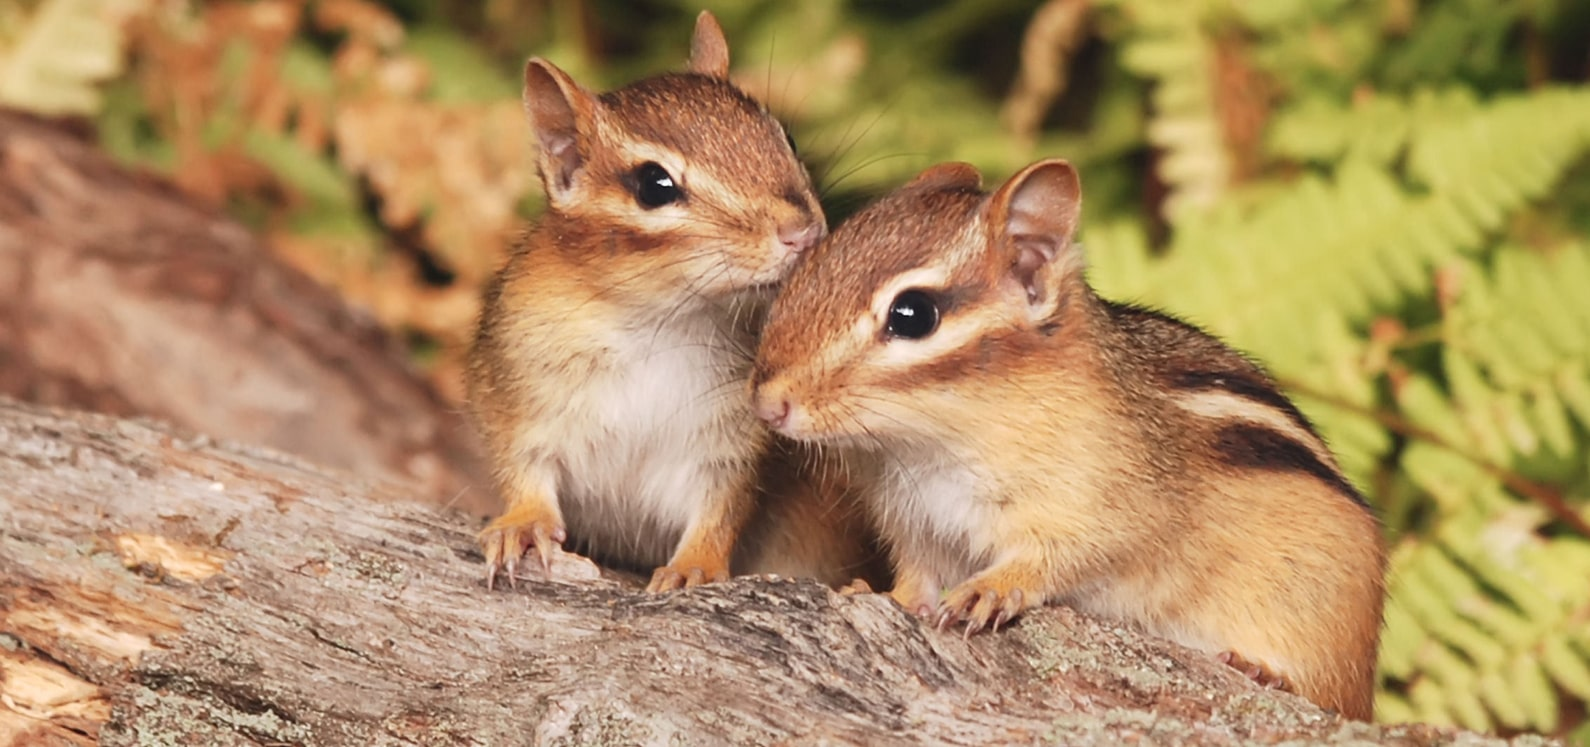 mainchipmunks-min-min.jpg